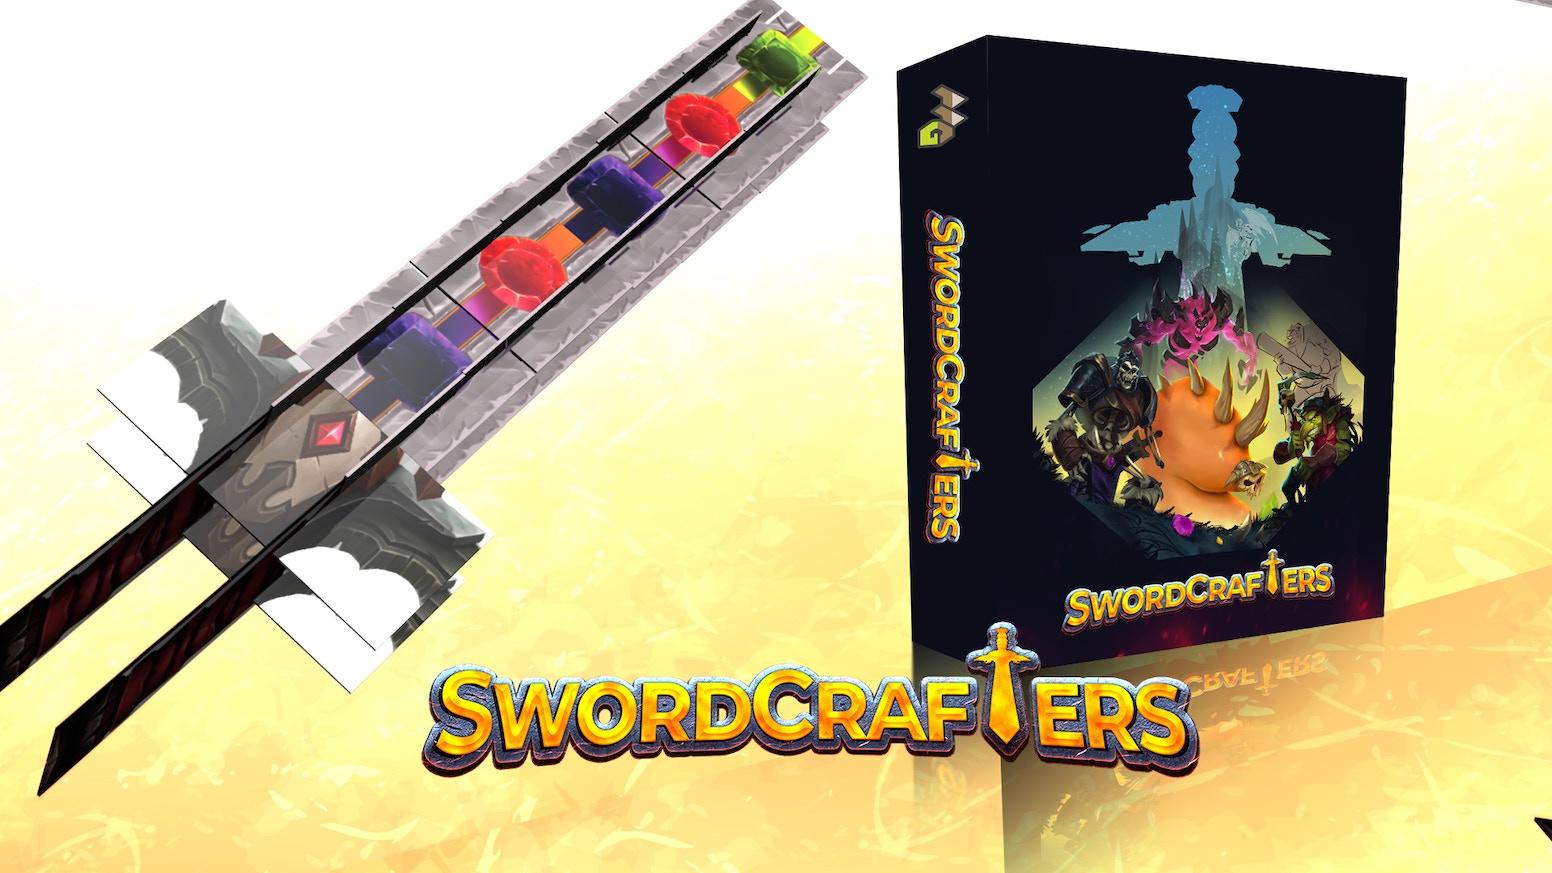 A tile selection and placement board game where each player builds a 3D tableau in the shape of a sword.